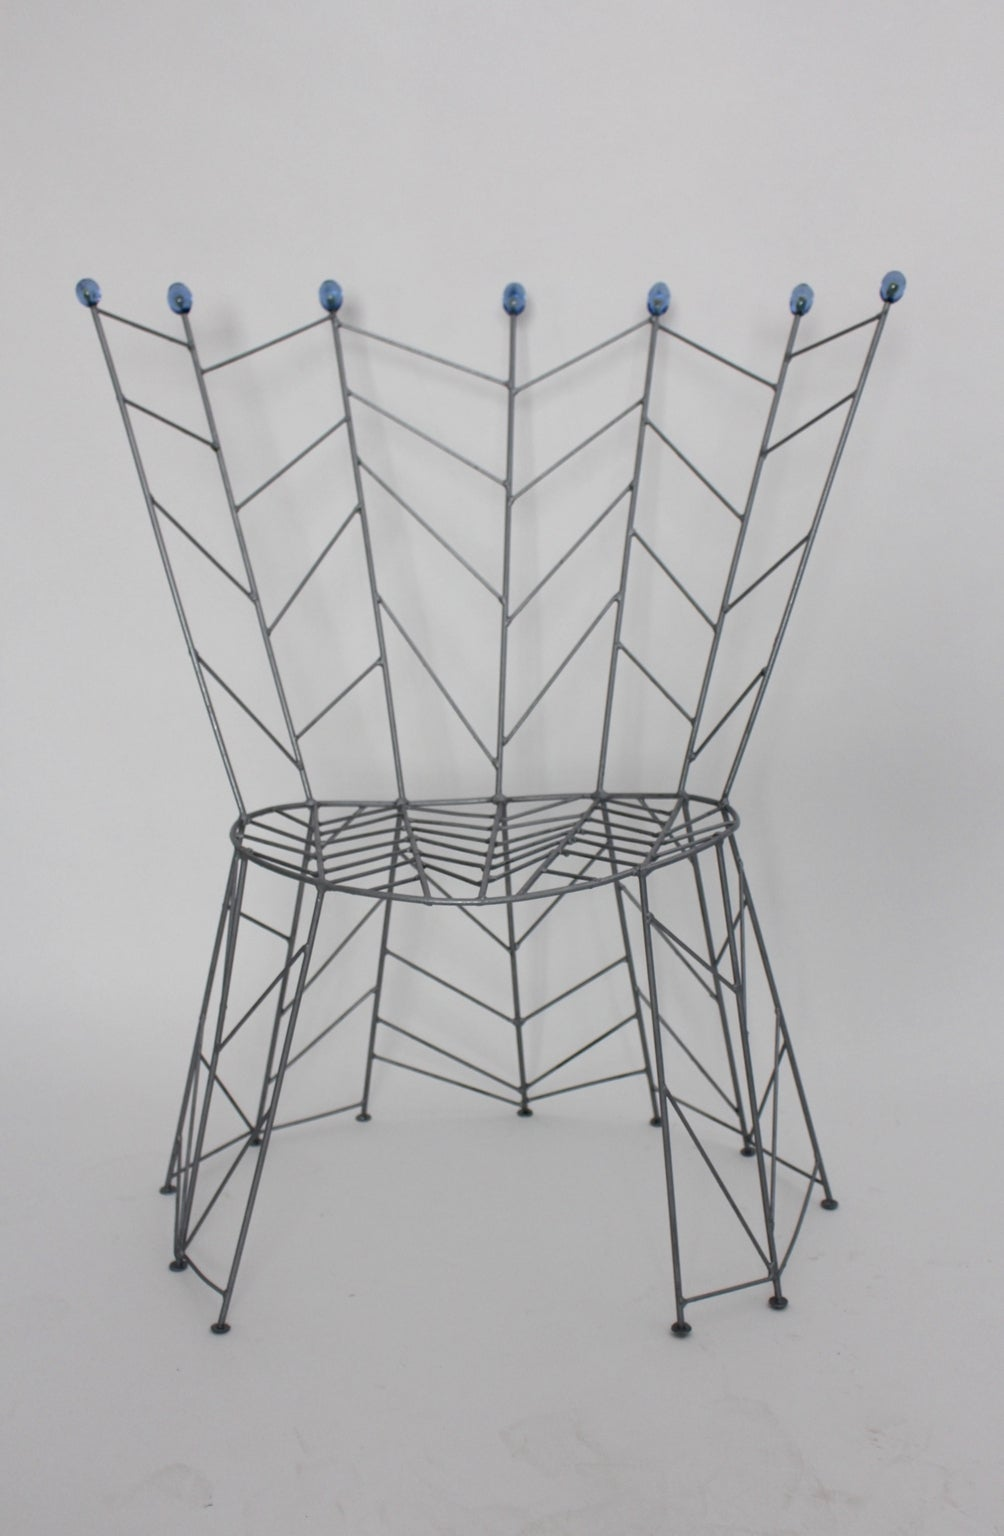 Late 20th Century Modernist Metal Vintage Chairs Pupeny by Bohuslav Horak 1988 Czech Republic For Sale